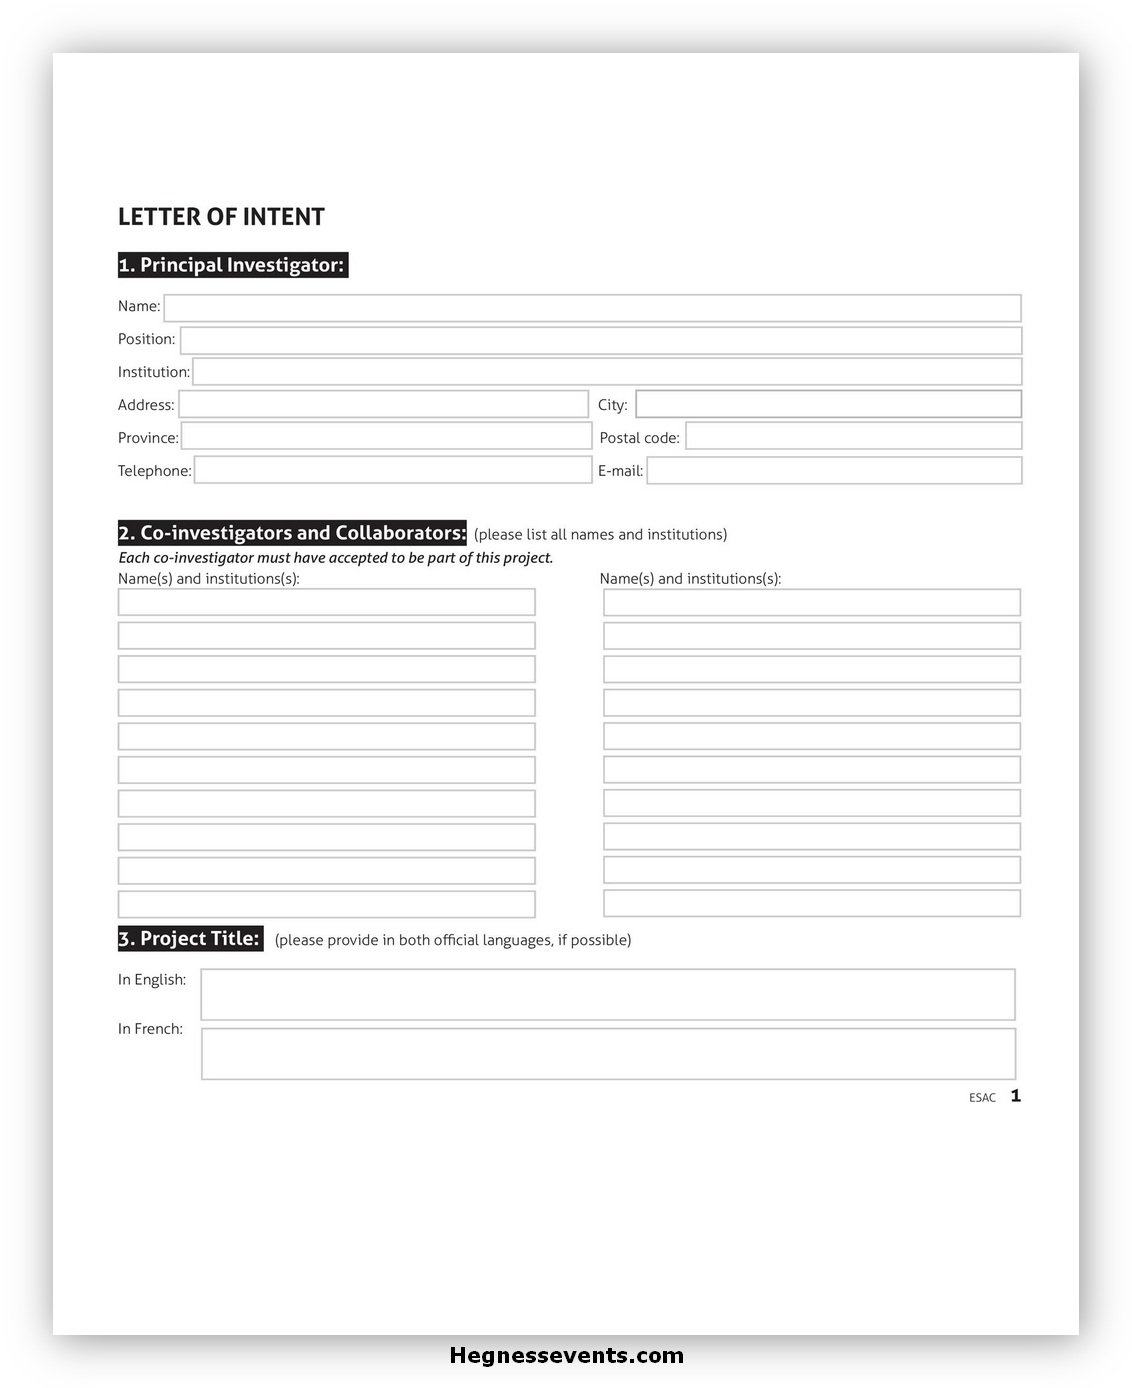 Letter of Intent Template 02